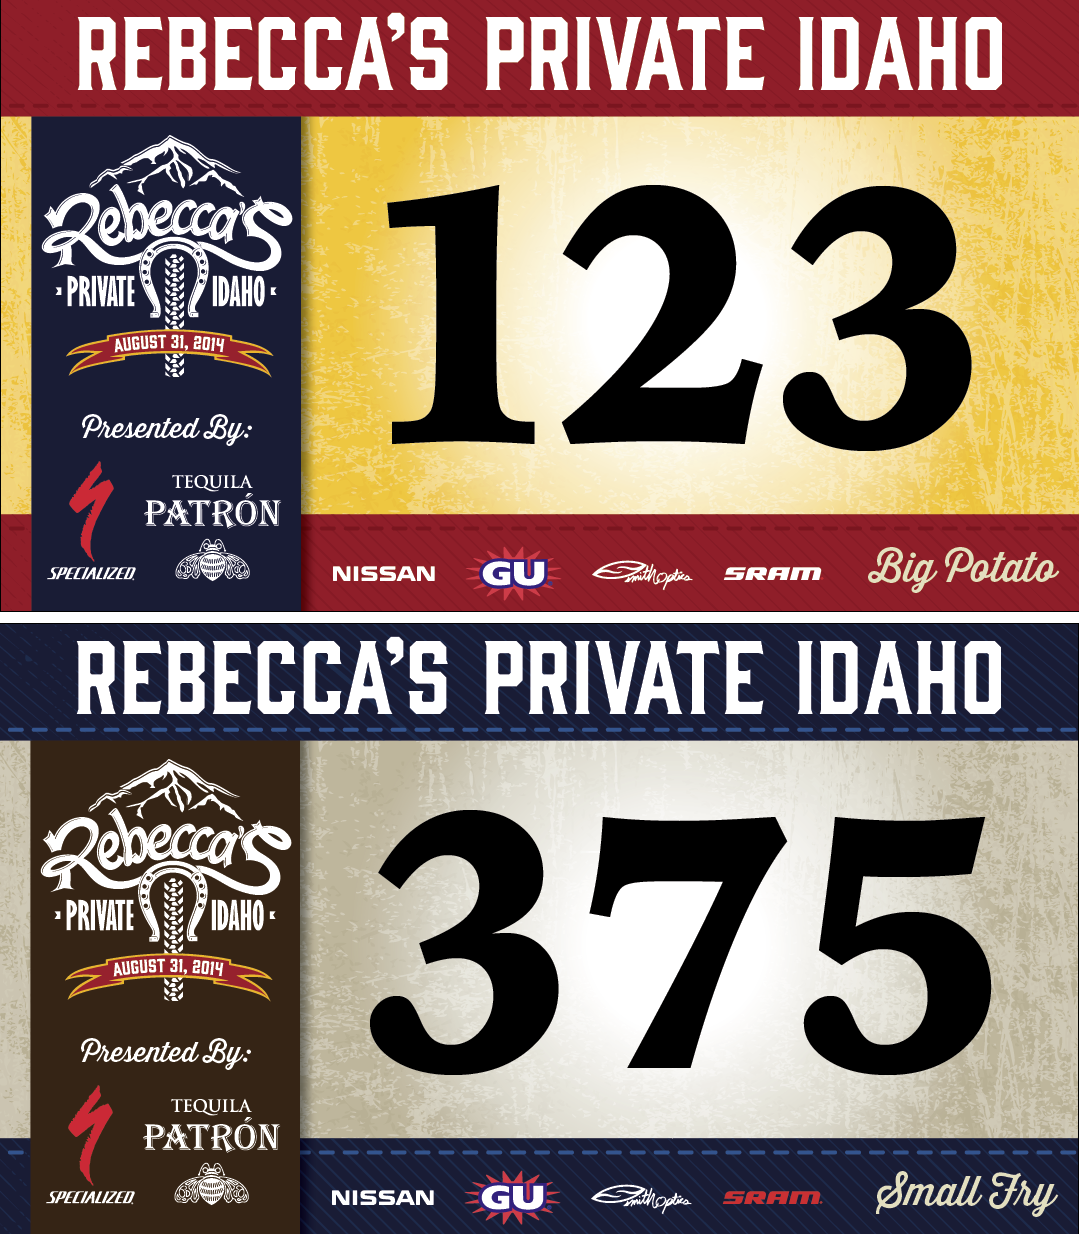 Number plates for Rebecca's Private Idaho 2014 Number